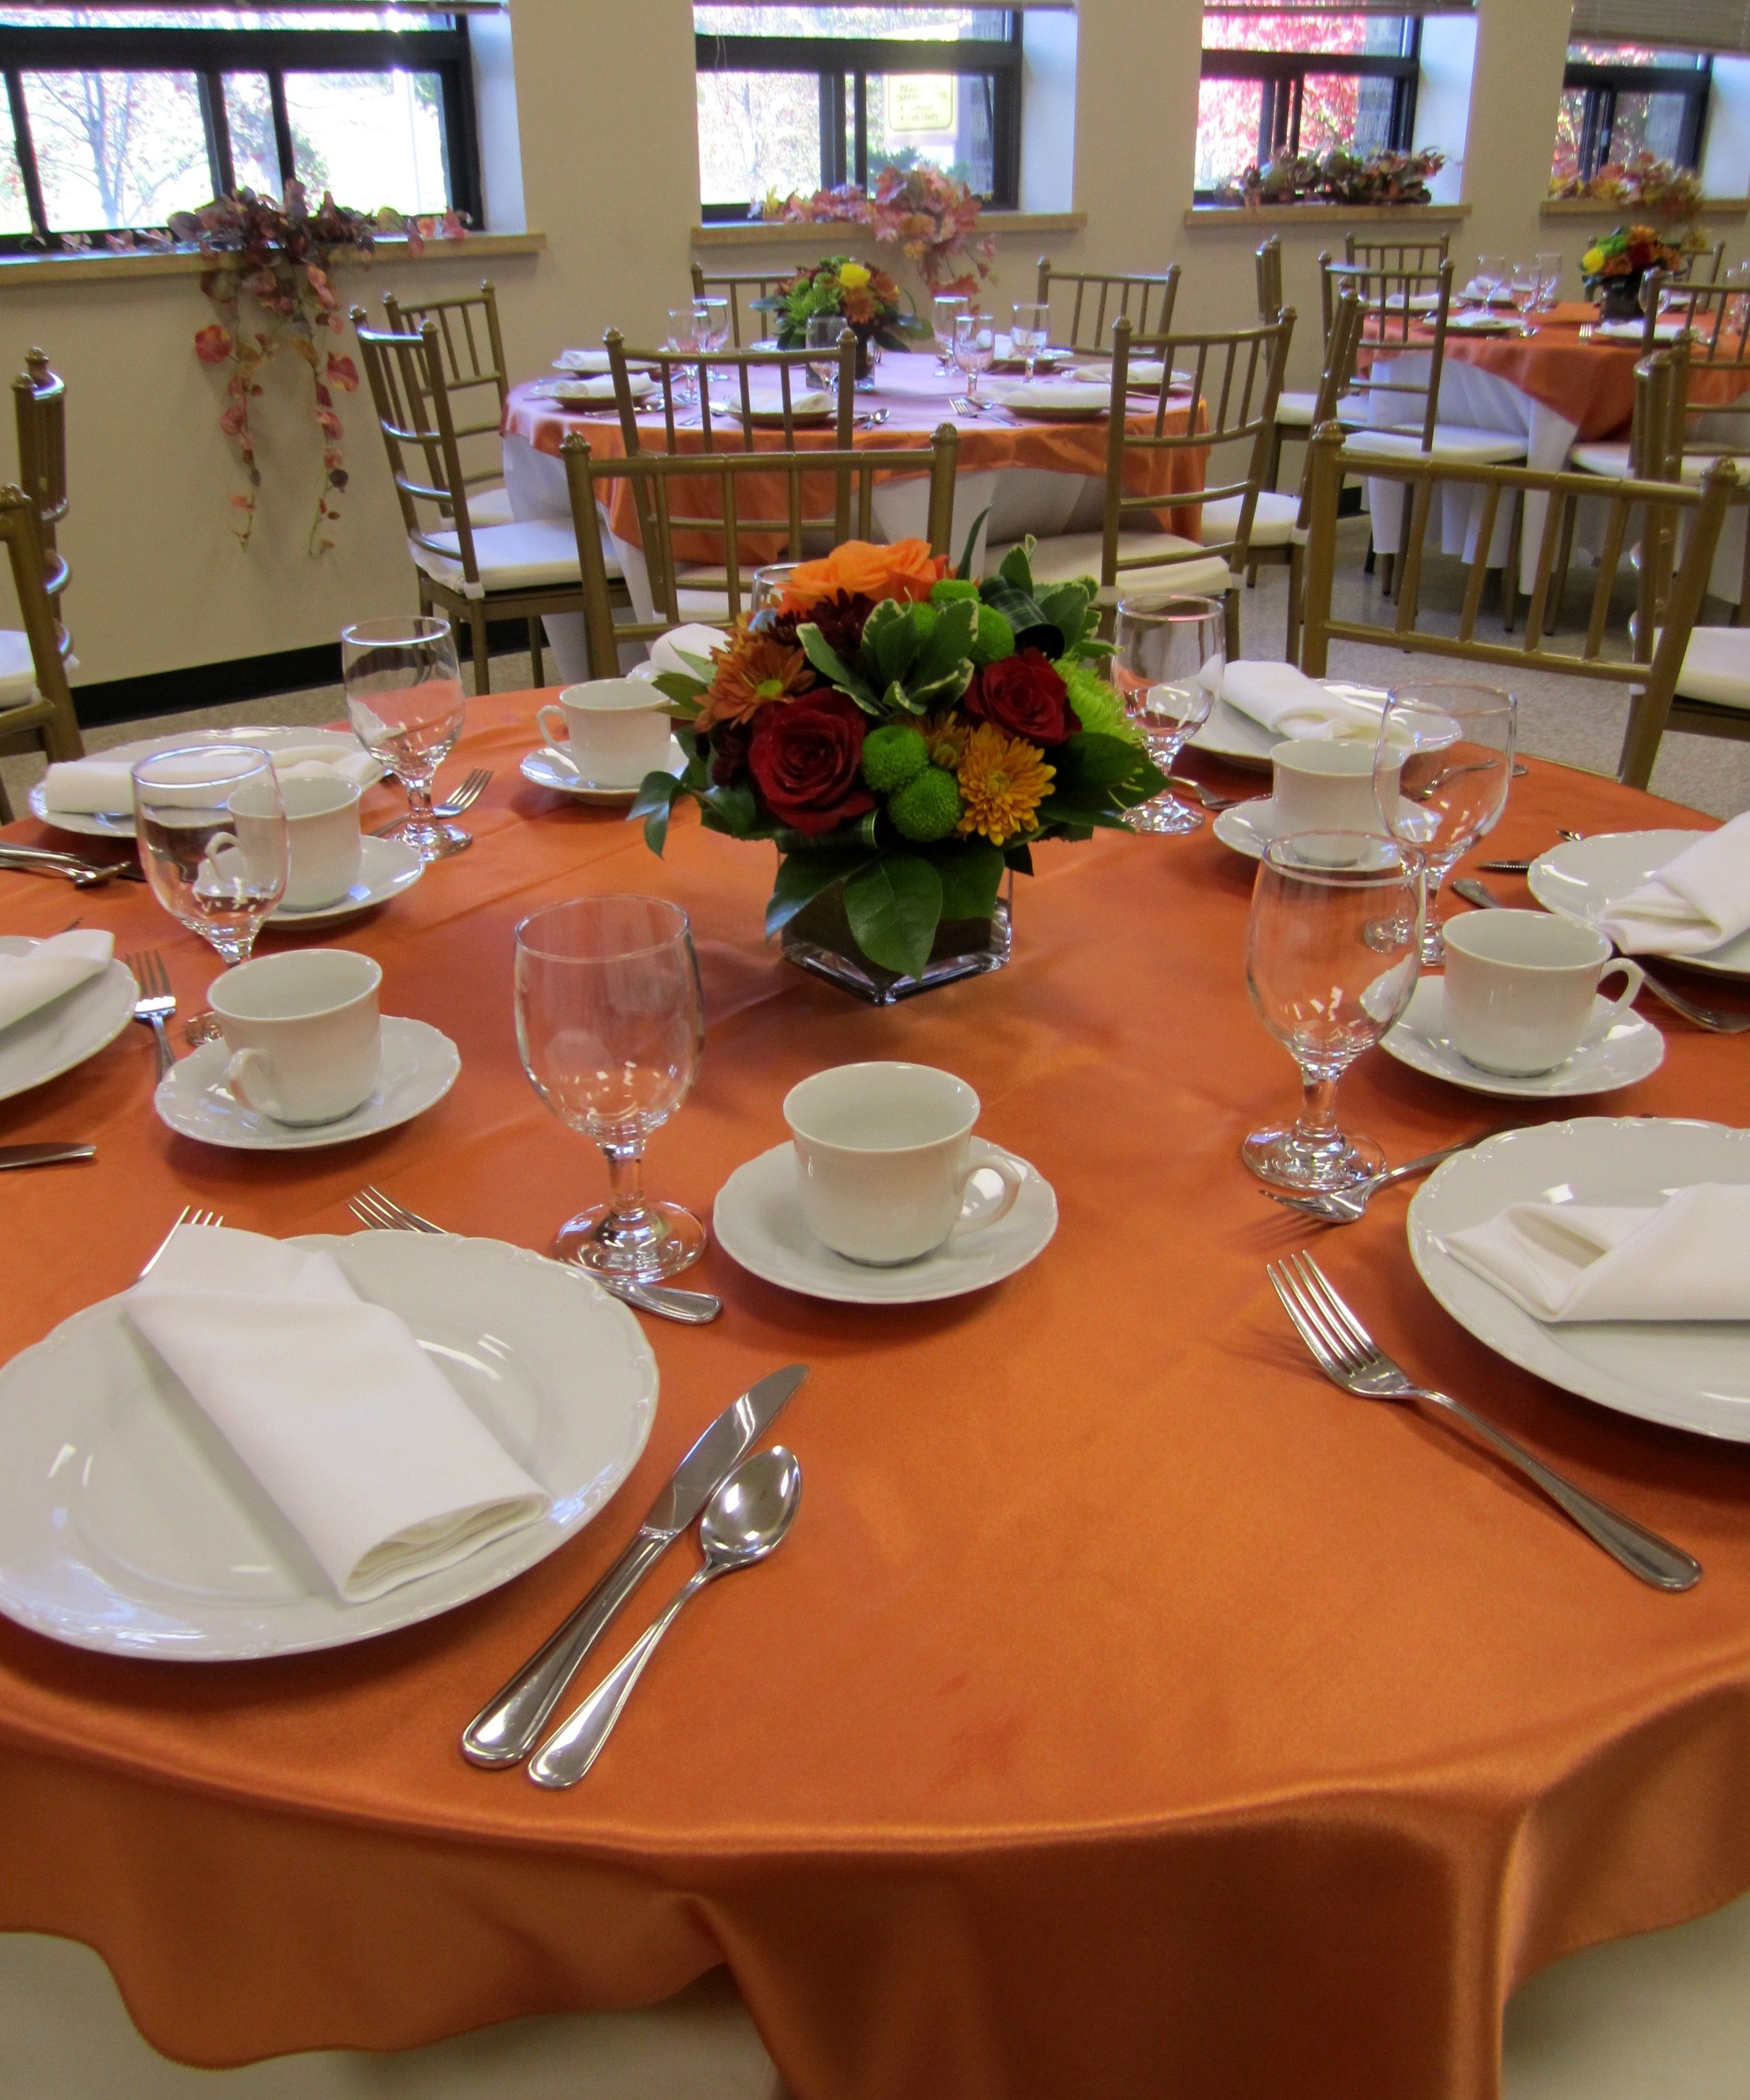 Simple Fall Centerpieces And Decor For An 85th Birthday Party Design By Davis Floral Creations